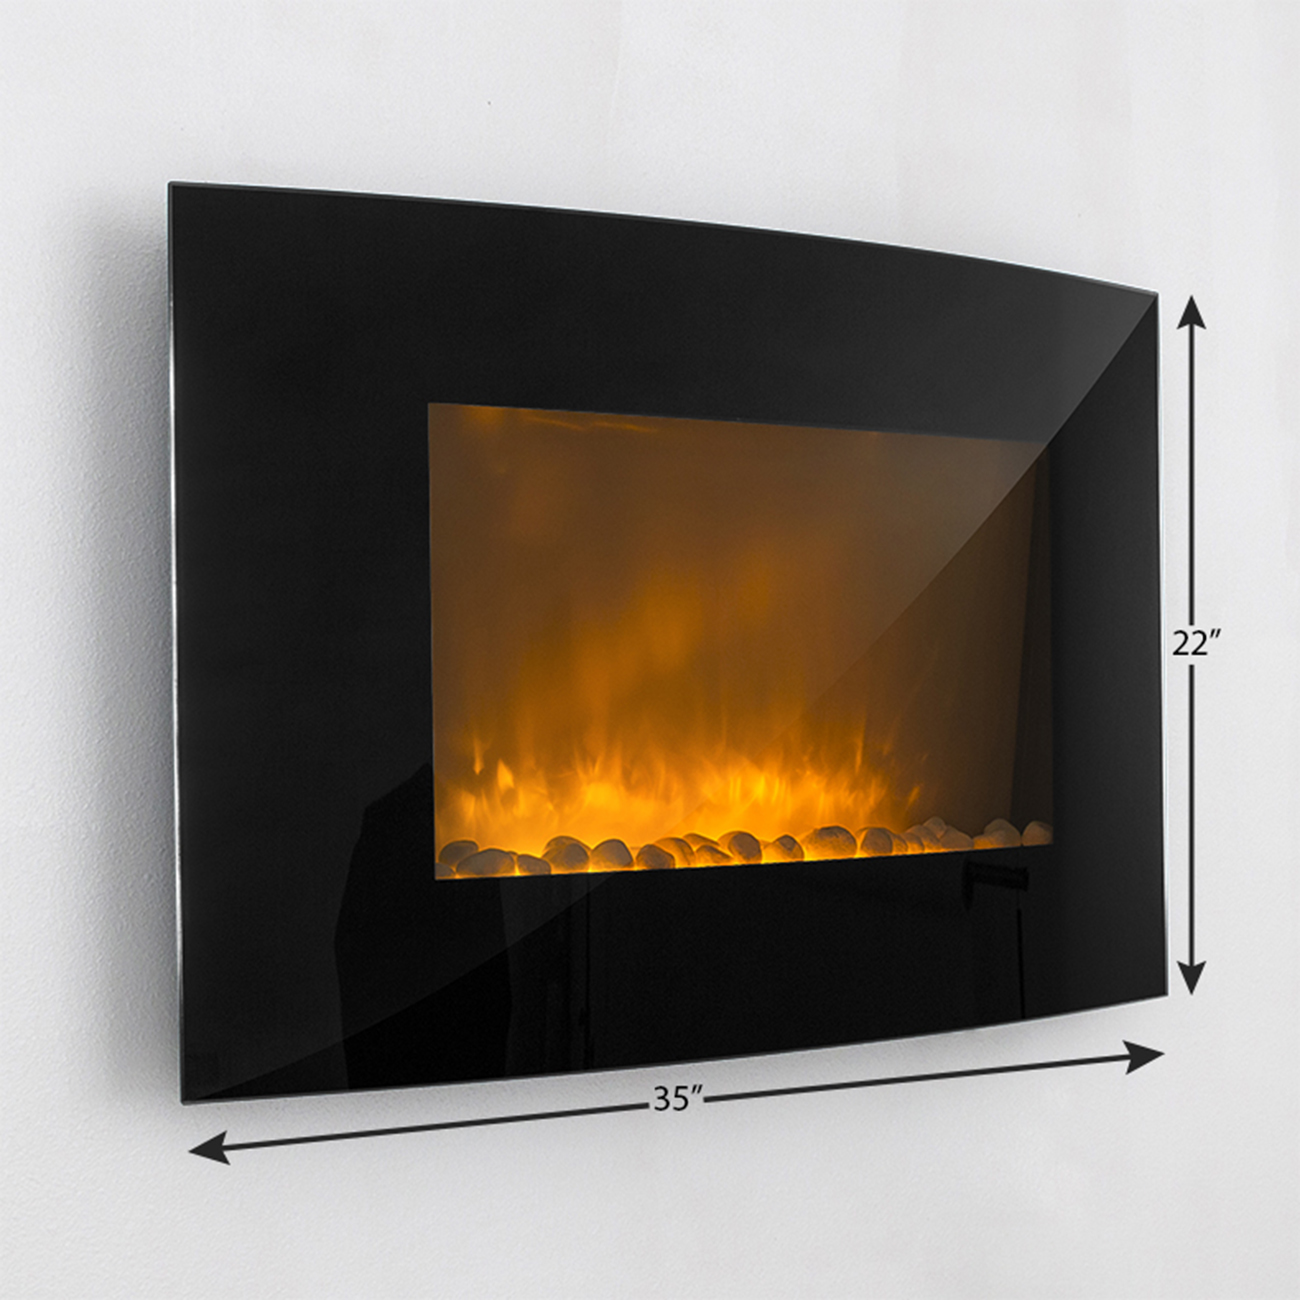 Large W Heat Adjustable Electric Wall Mount Fireplace